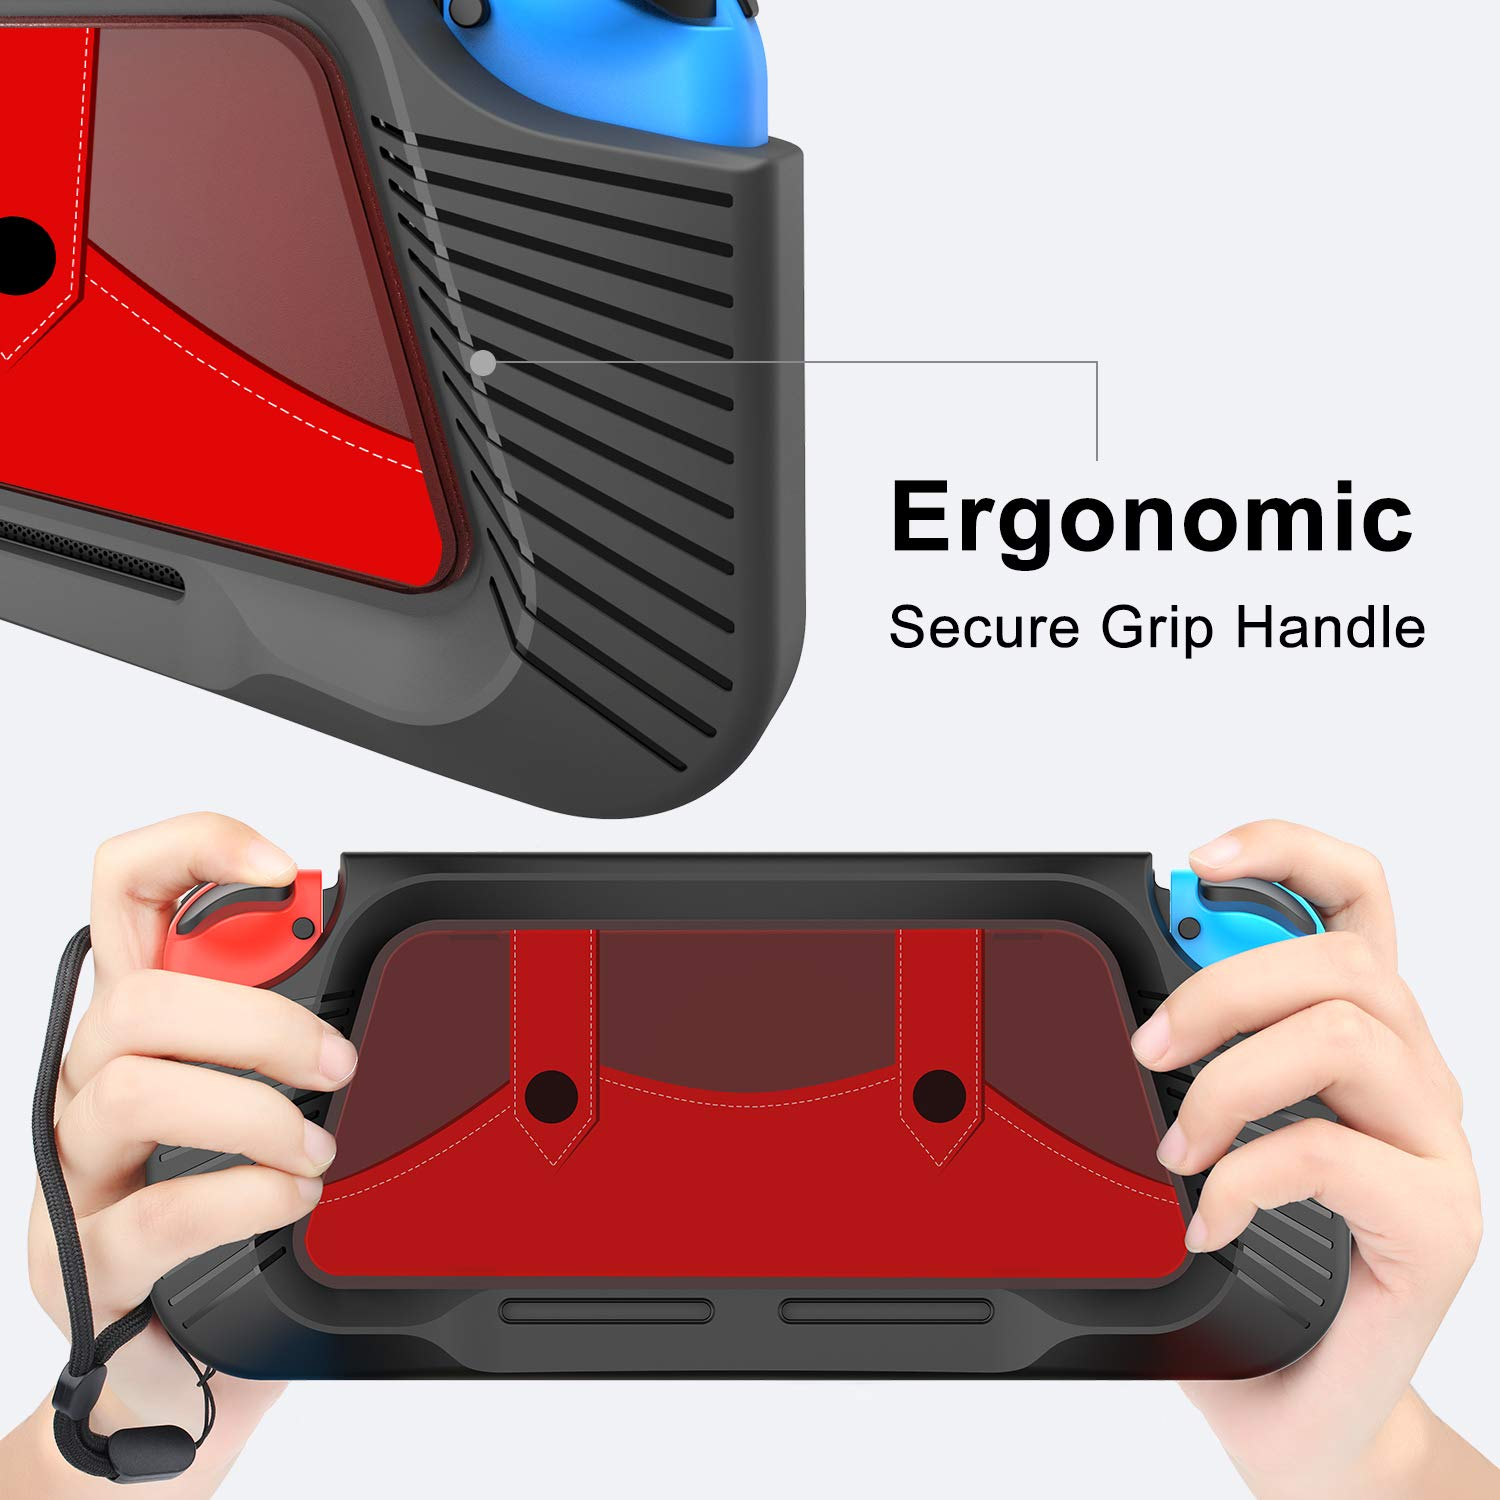 Nintendo Switch Case, Protective Heavy Duty Cover Case for Nintendo Switch with Shock-Absorption and Anti-Scratch